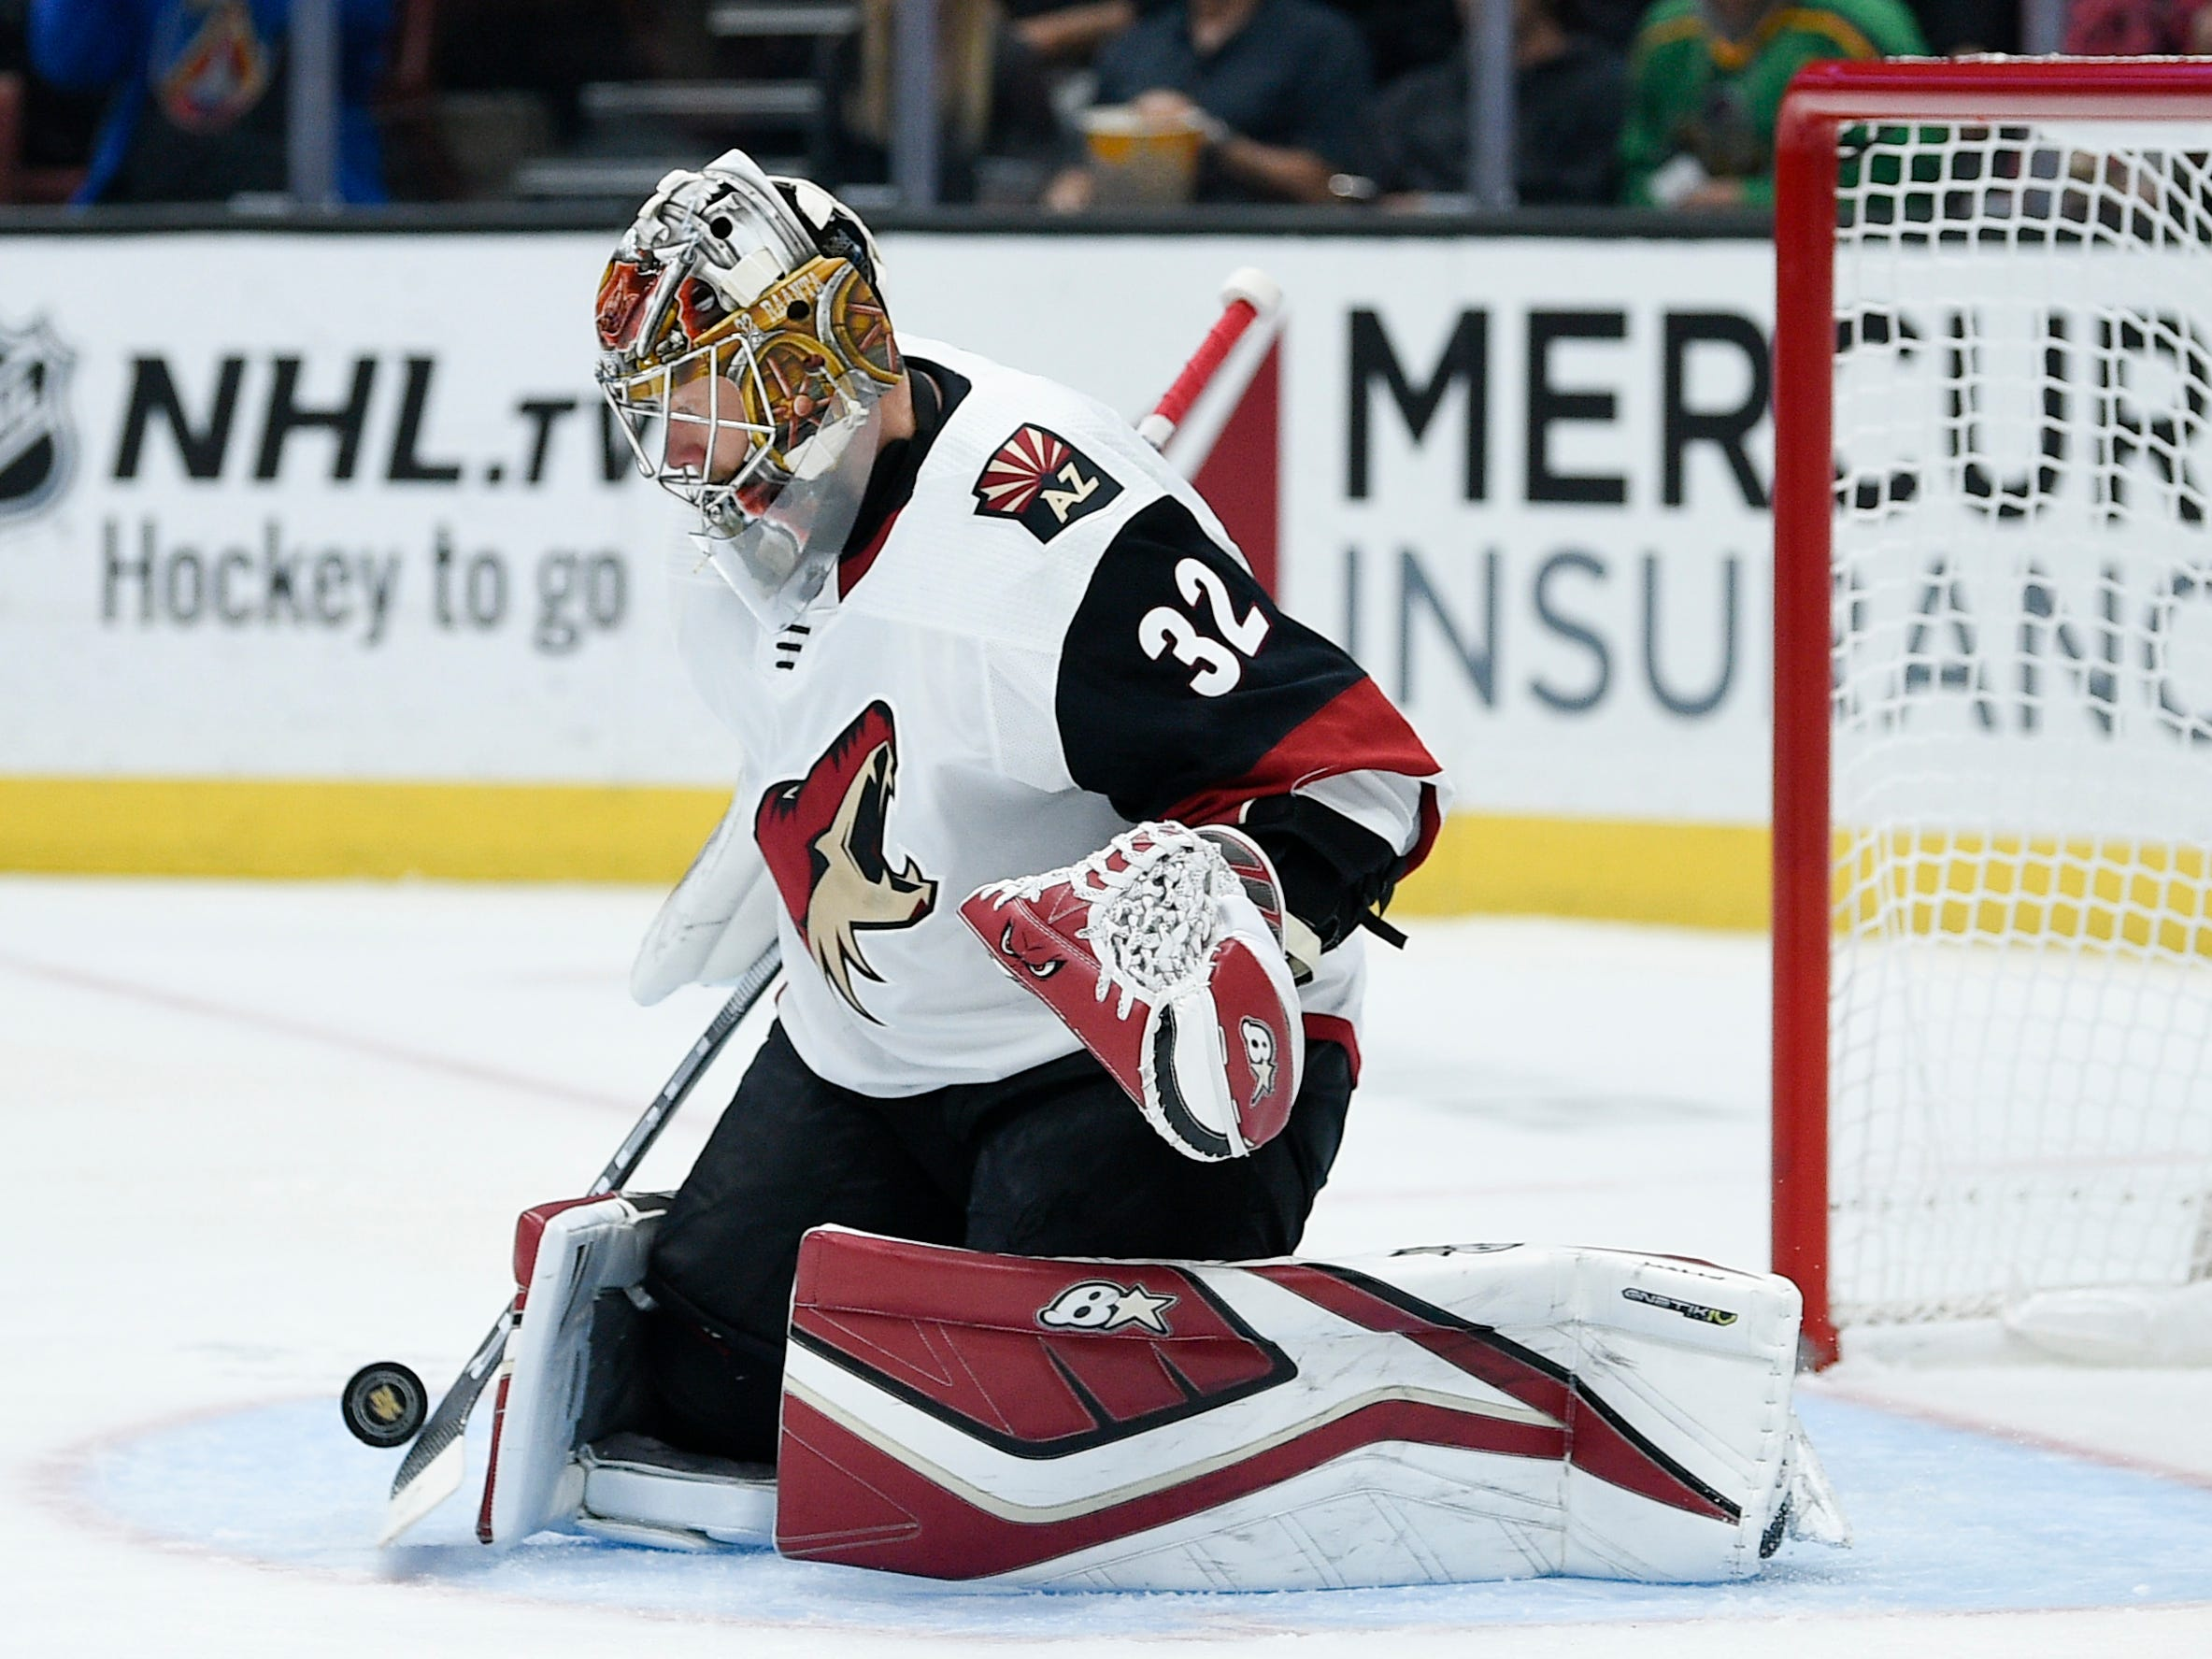 Oct 10, 2018; Anaheim, CA, USA; Arizona Coyotes goalie Antti Raanta (32) makes a save during the second period against the Anaheim Ducks at Honda Center.